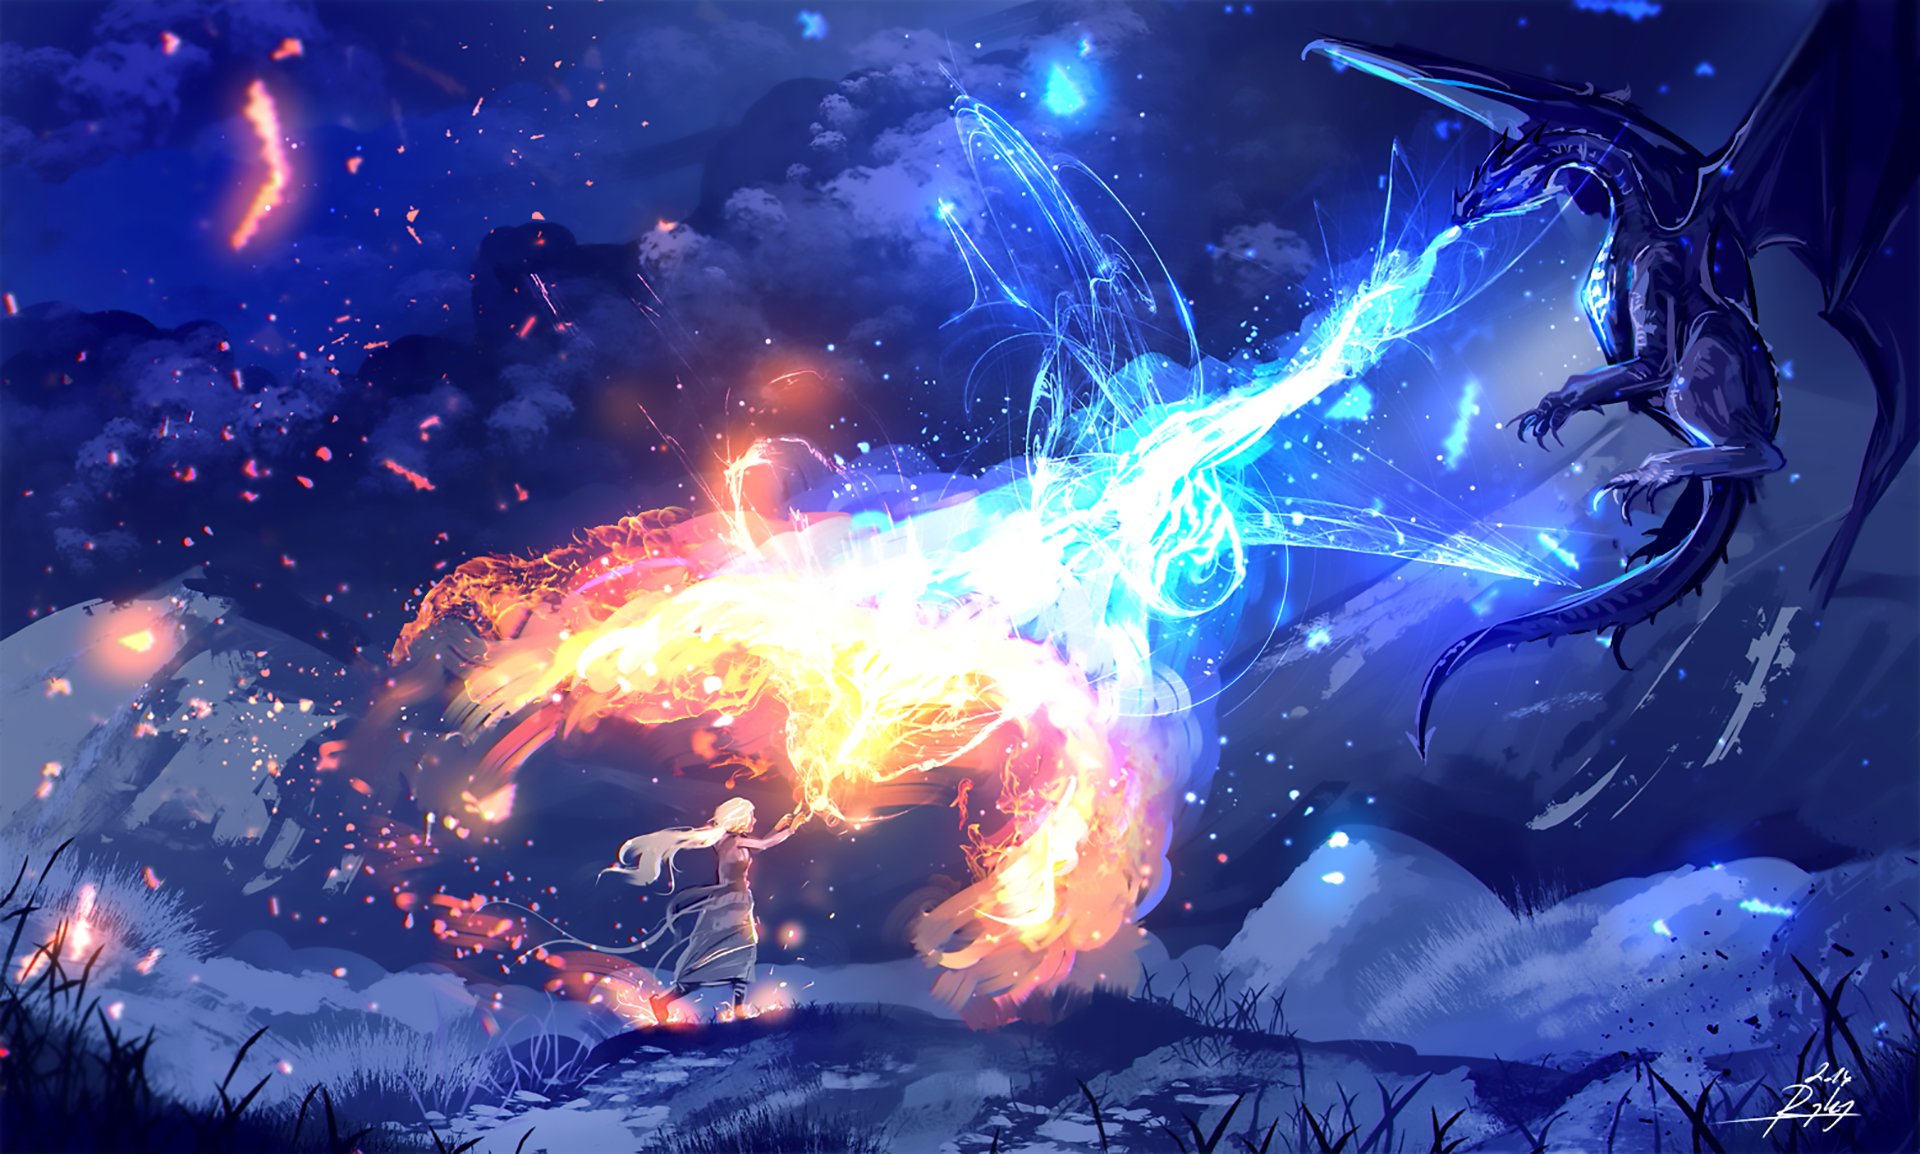 Fire And Ice Hd Wallpaper